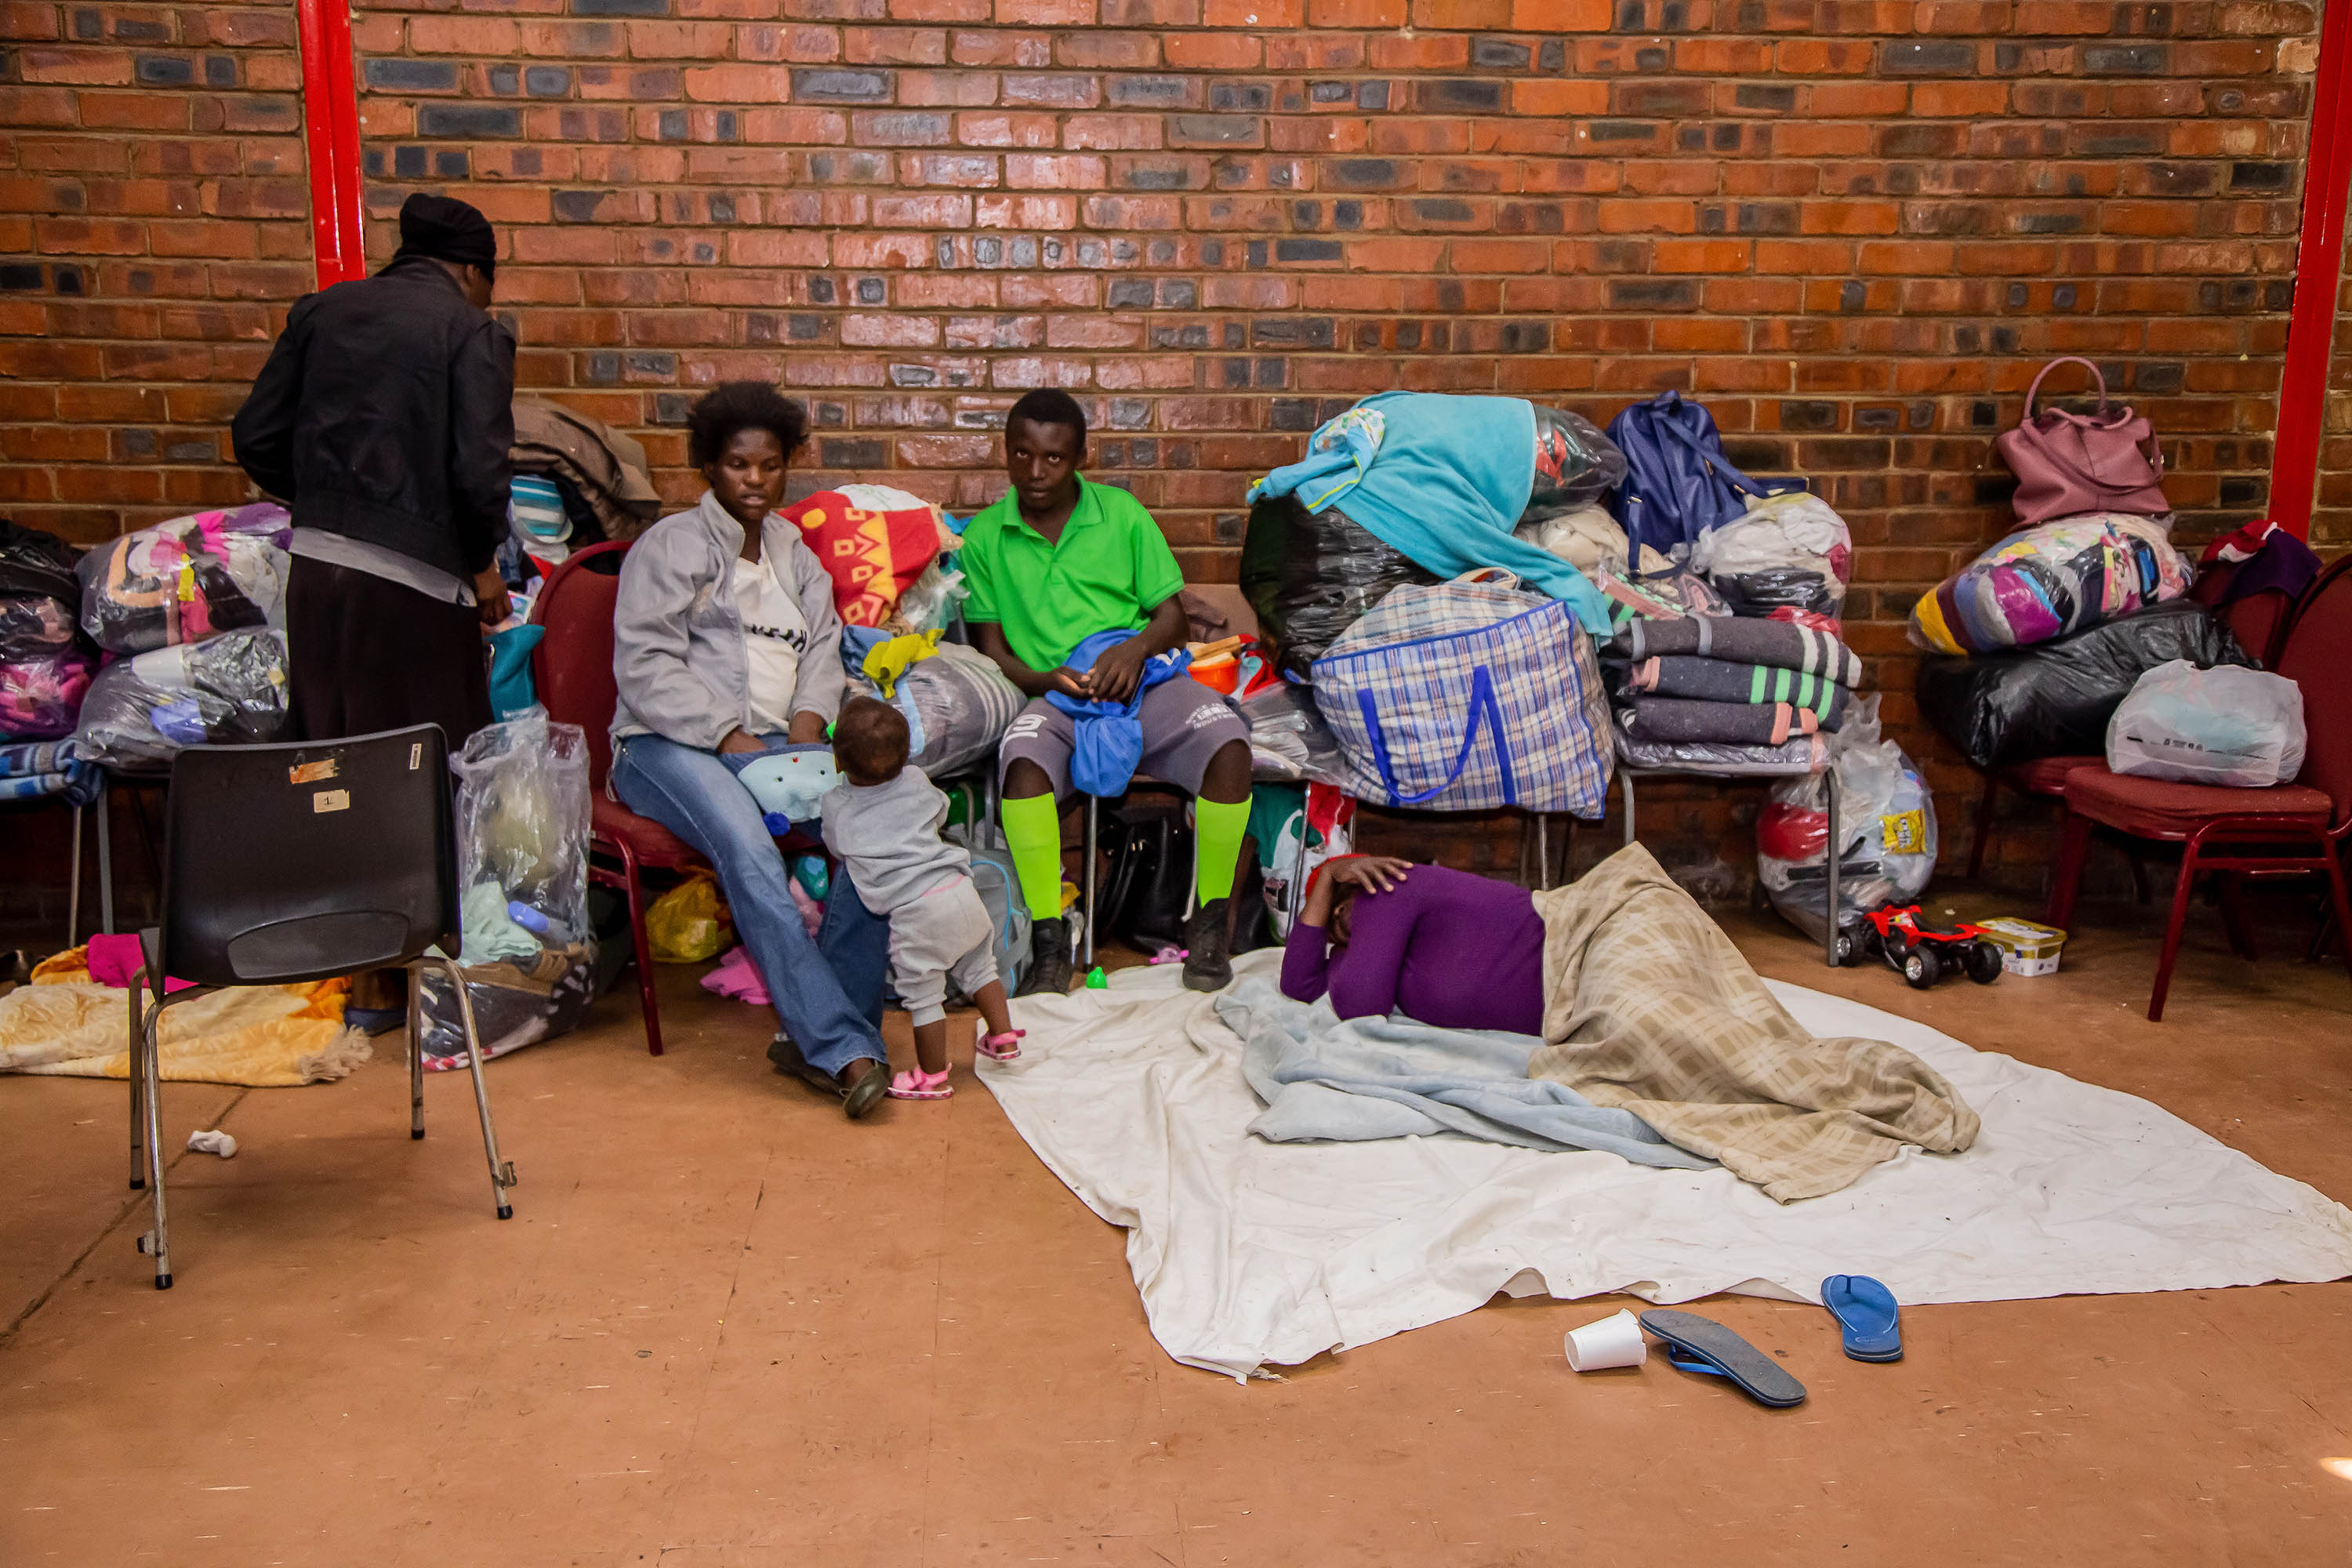 10 September 2019: Migrants displaced by xenophobic violence in Katlehong township near Johannesburg lost everything and have found temporary refuge at the Thulo Hall and other centres in the area. (Photograph by OJ Koloti/Gallo Images)